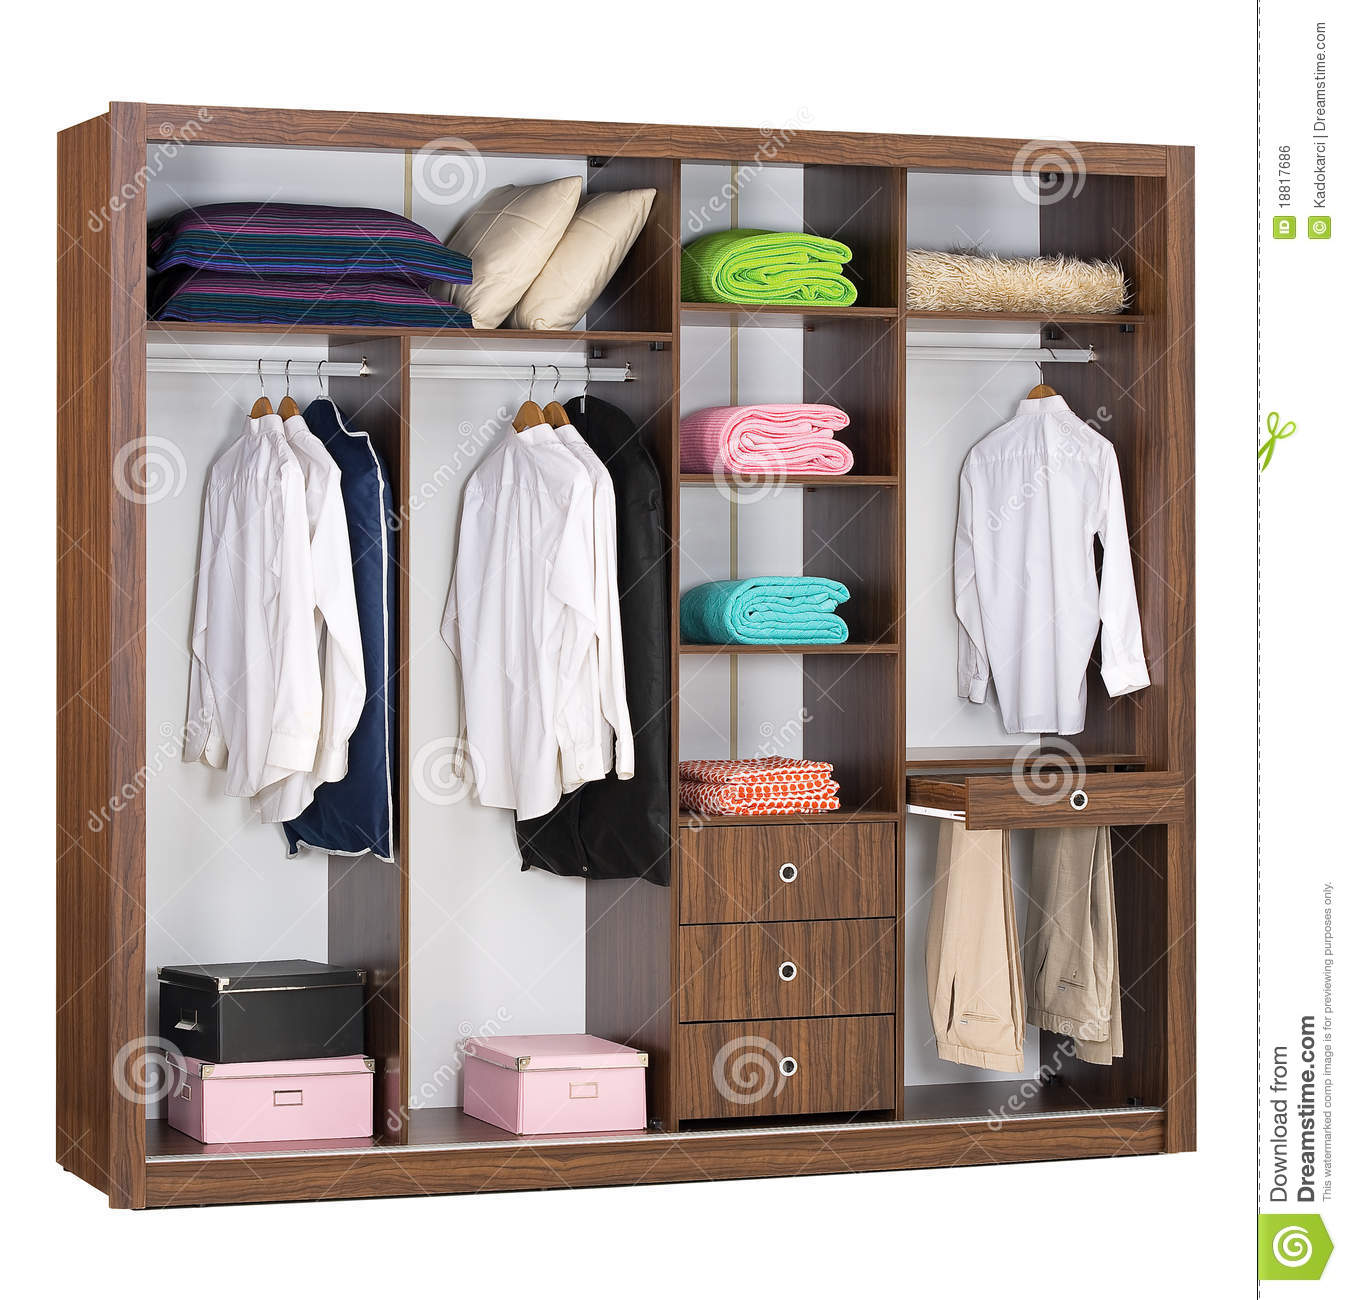 Cabinet Inside Royalty Free Stock Image